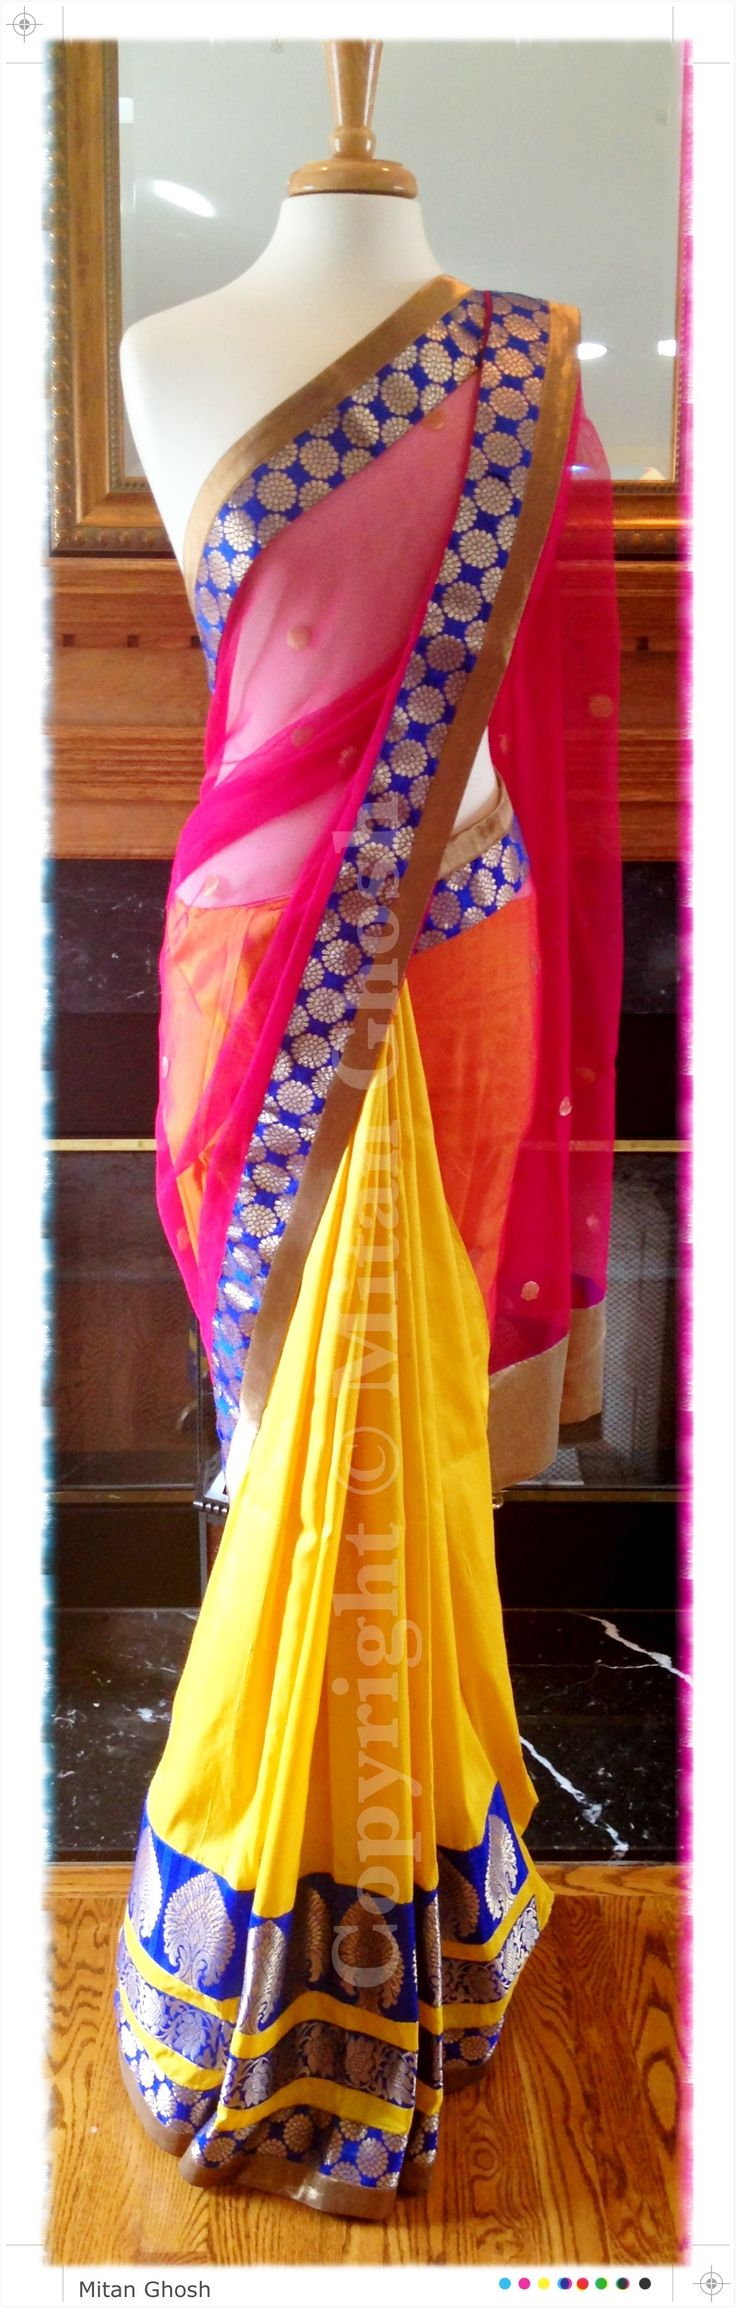 Banarsi net and raw silk saree.